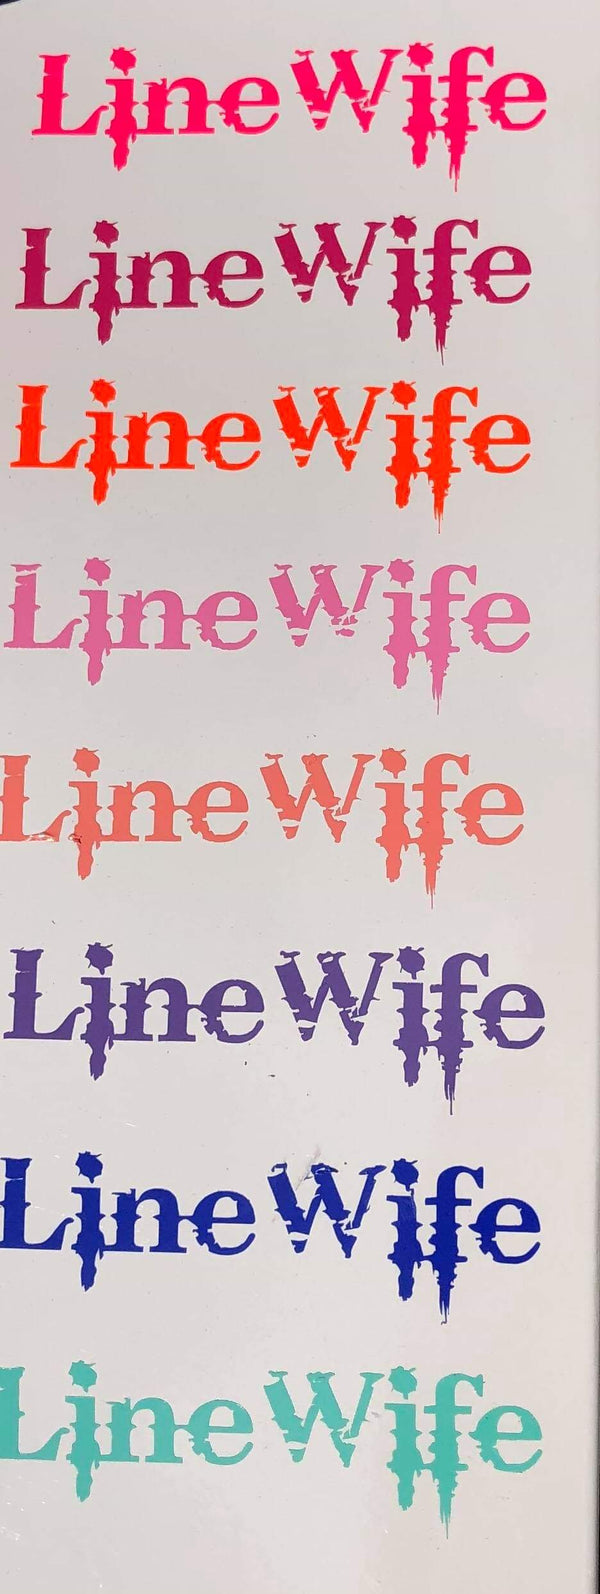 "4""x1.5"" Linewife Stickers"